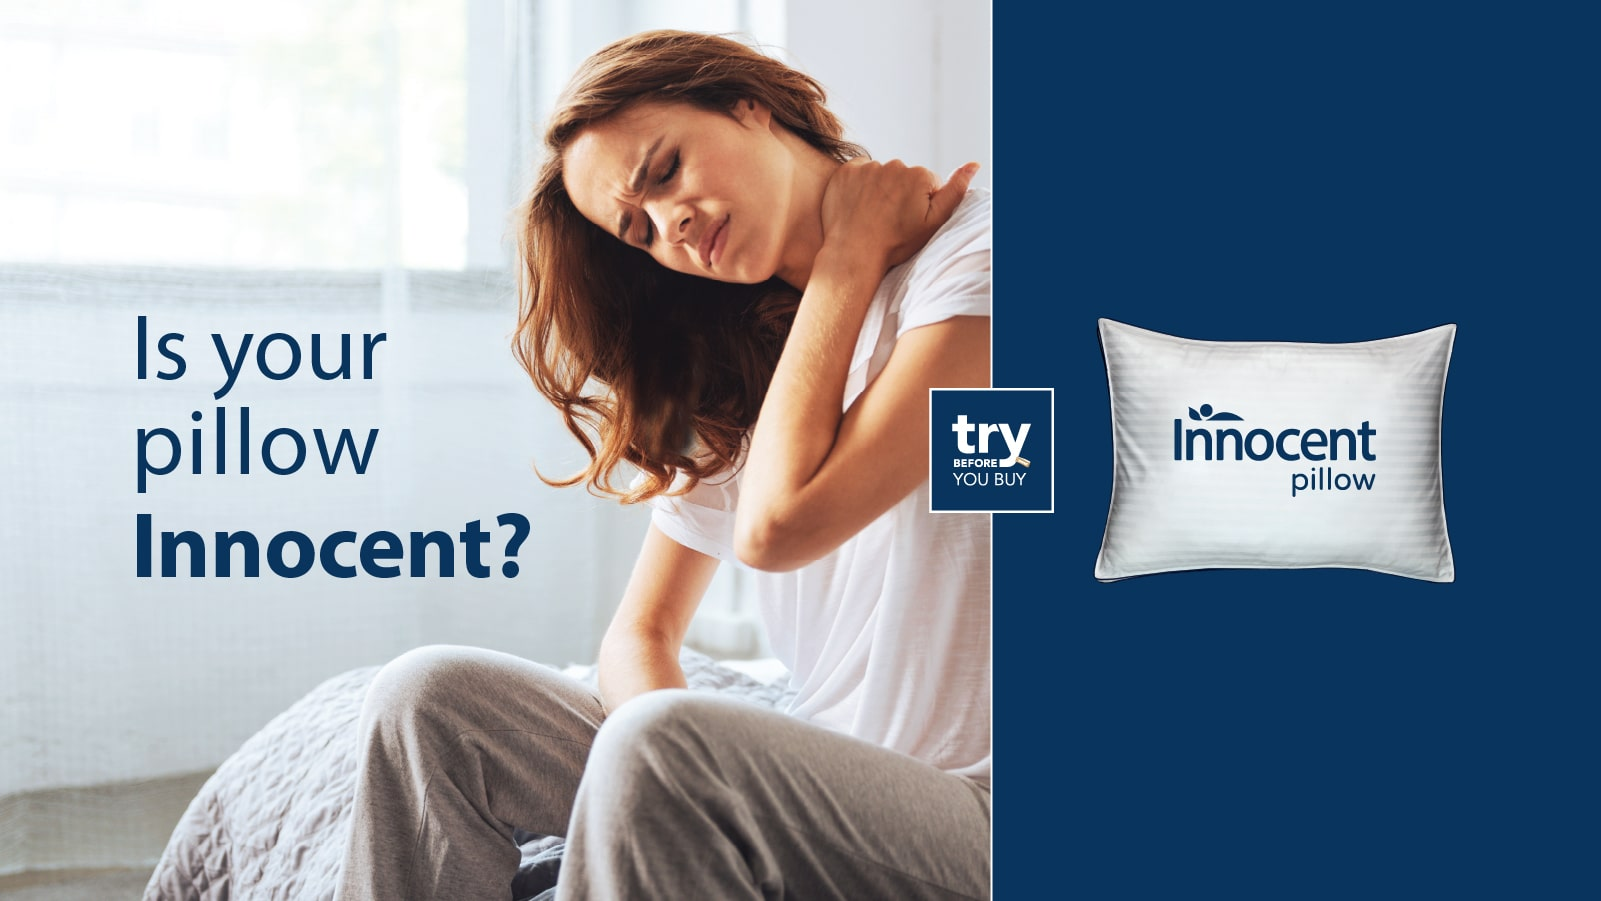 Is your pillow innocent?